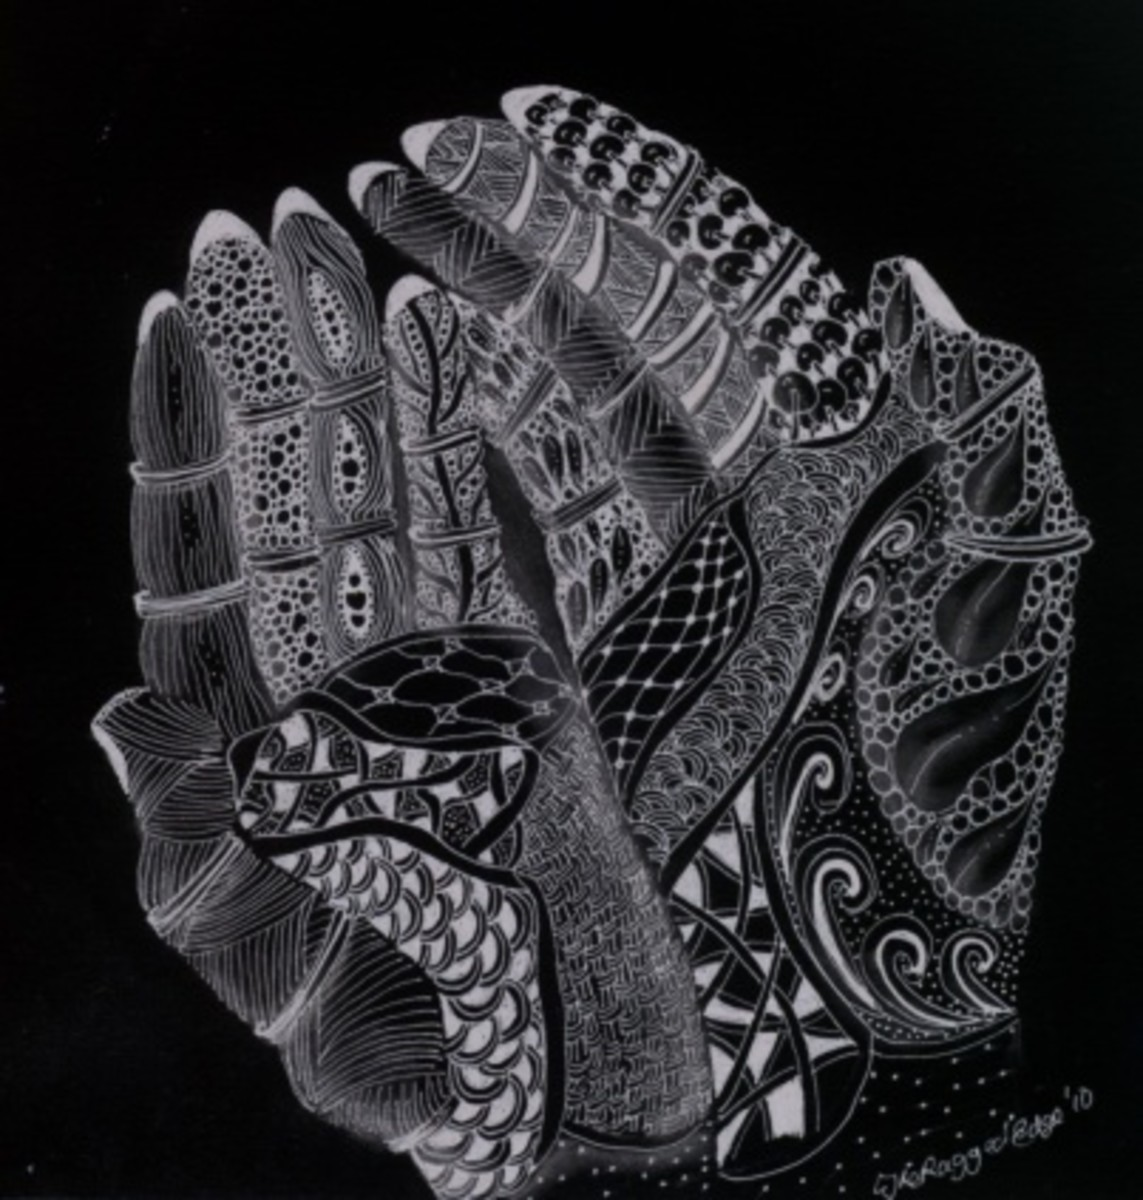 Try turning your zendoodle into a negative image - or use a white pen on black paper.